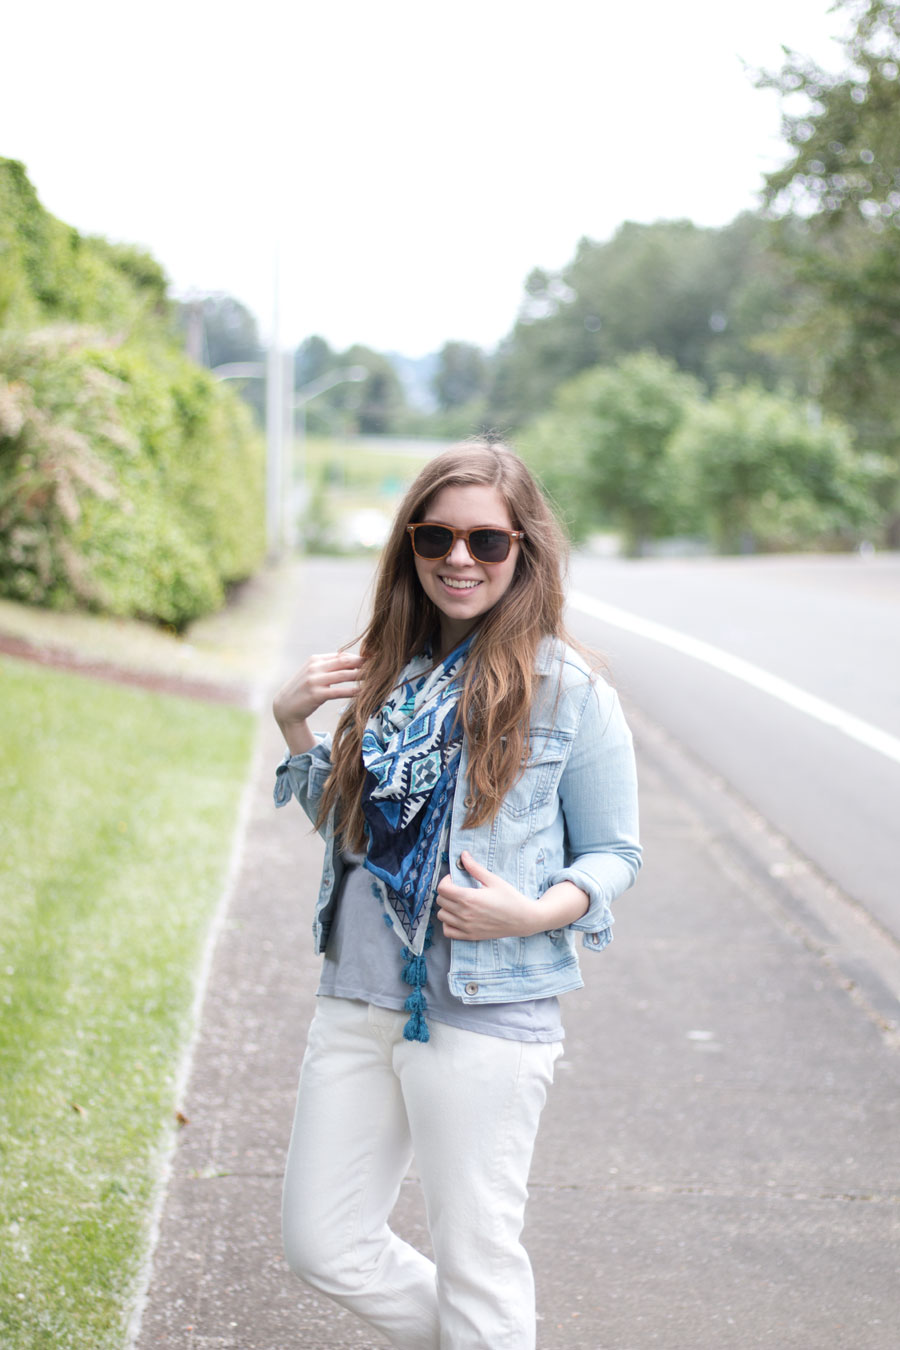 Jean Jacket, Pom Pom Scarf, & White Jeans Outfit / hellorigby seattle fashion blog